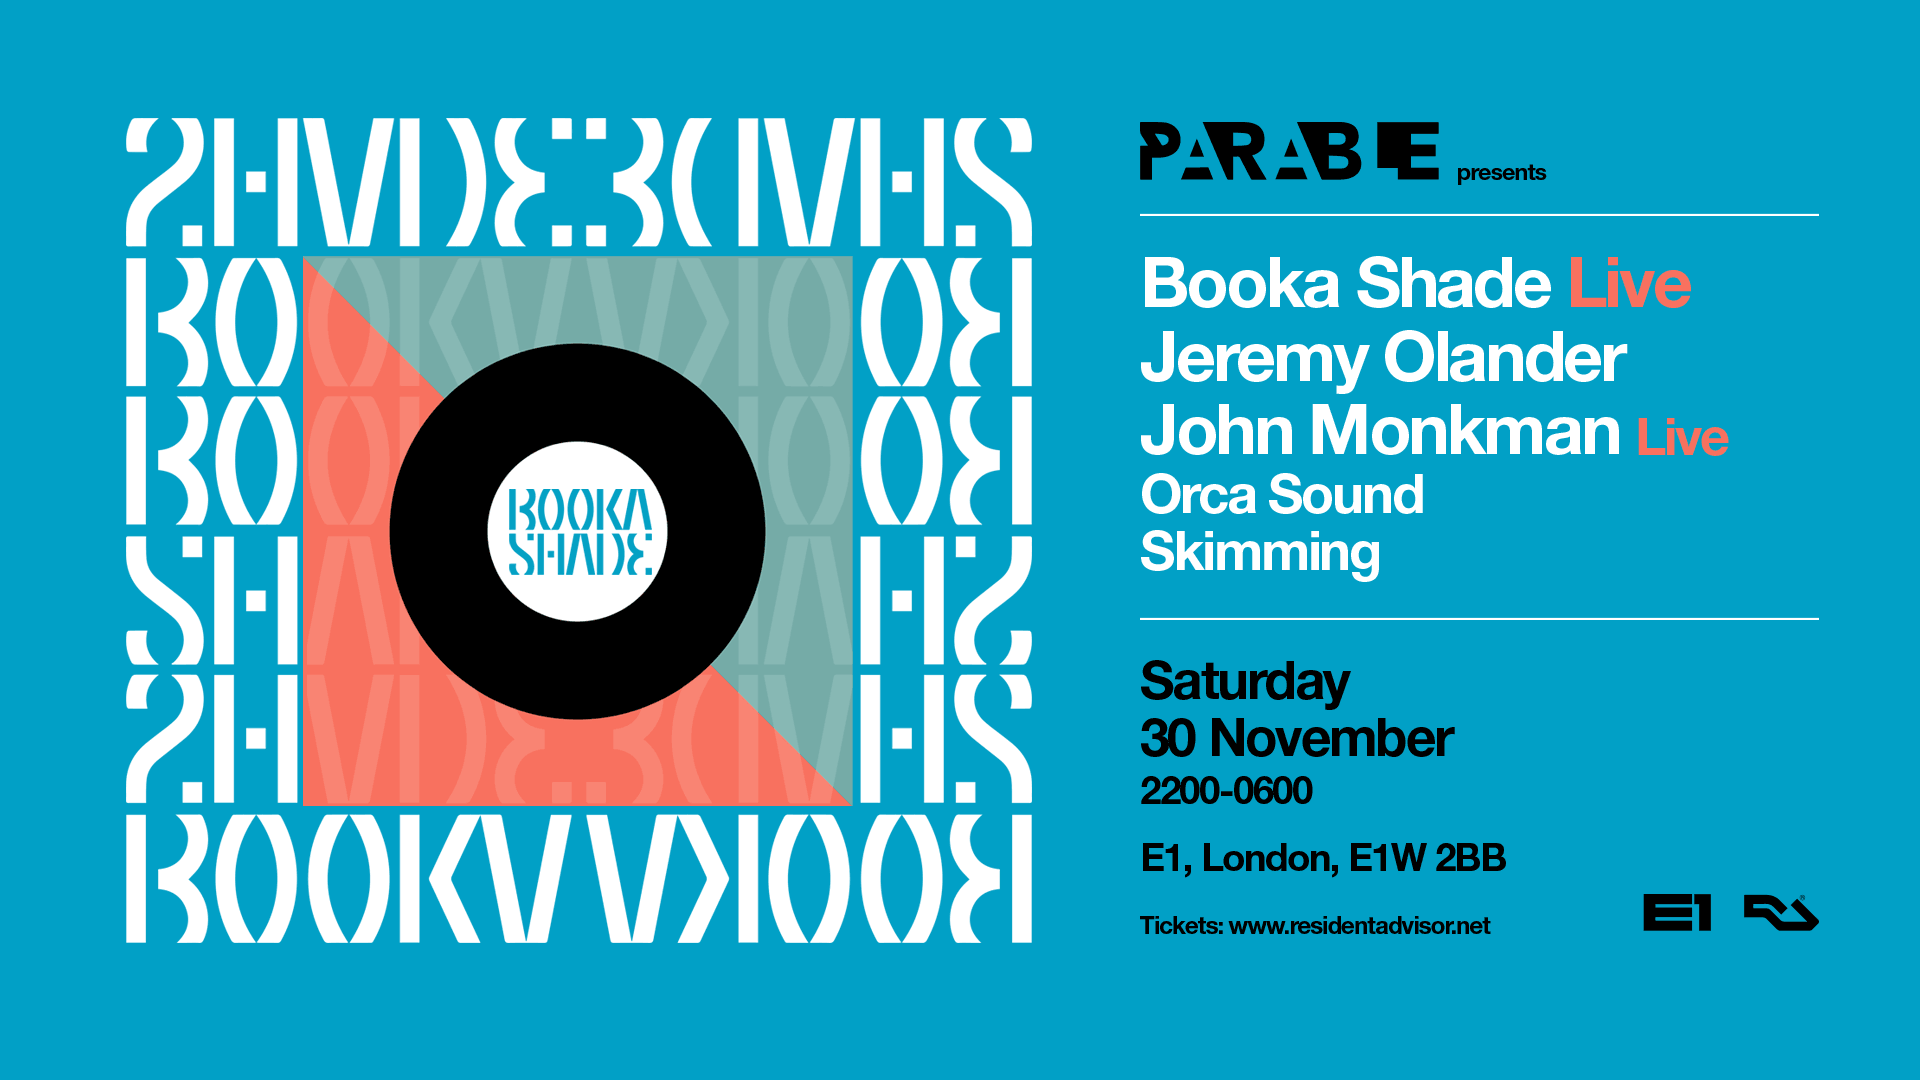 Booka Shade Live, Jeremy Olander, John Monkman Live – E1 London